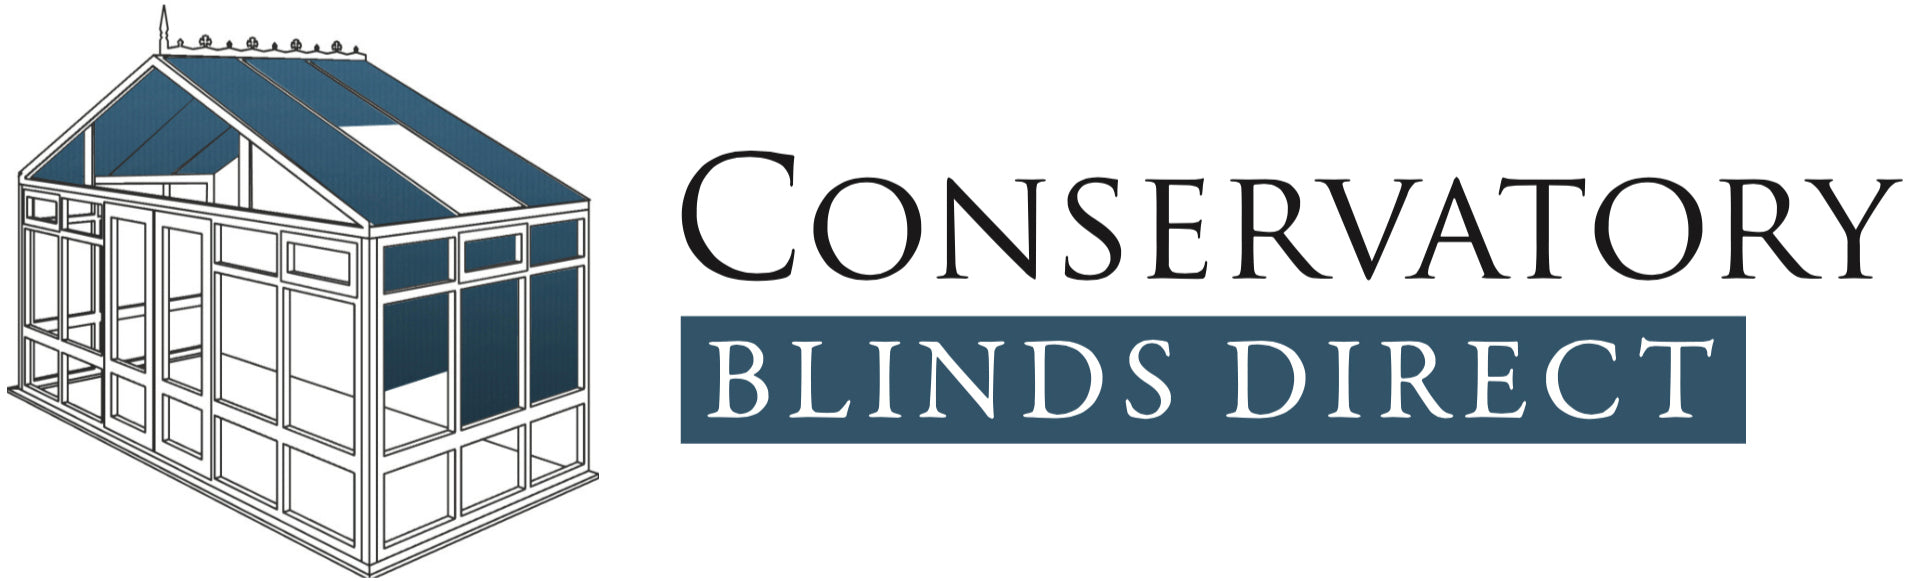 Conservatory Blinds Direct